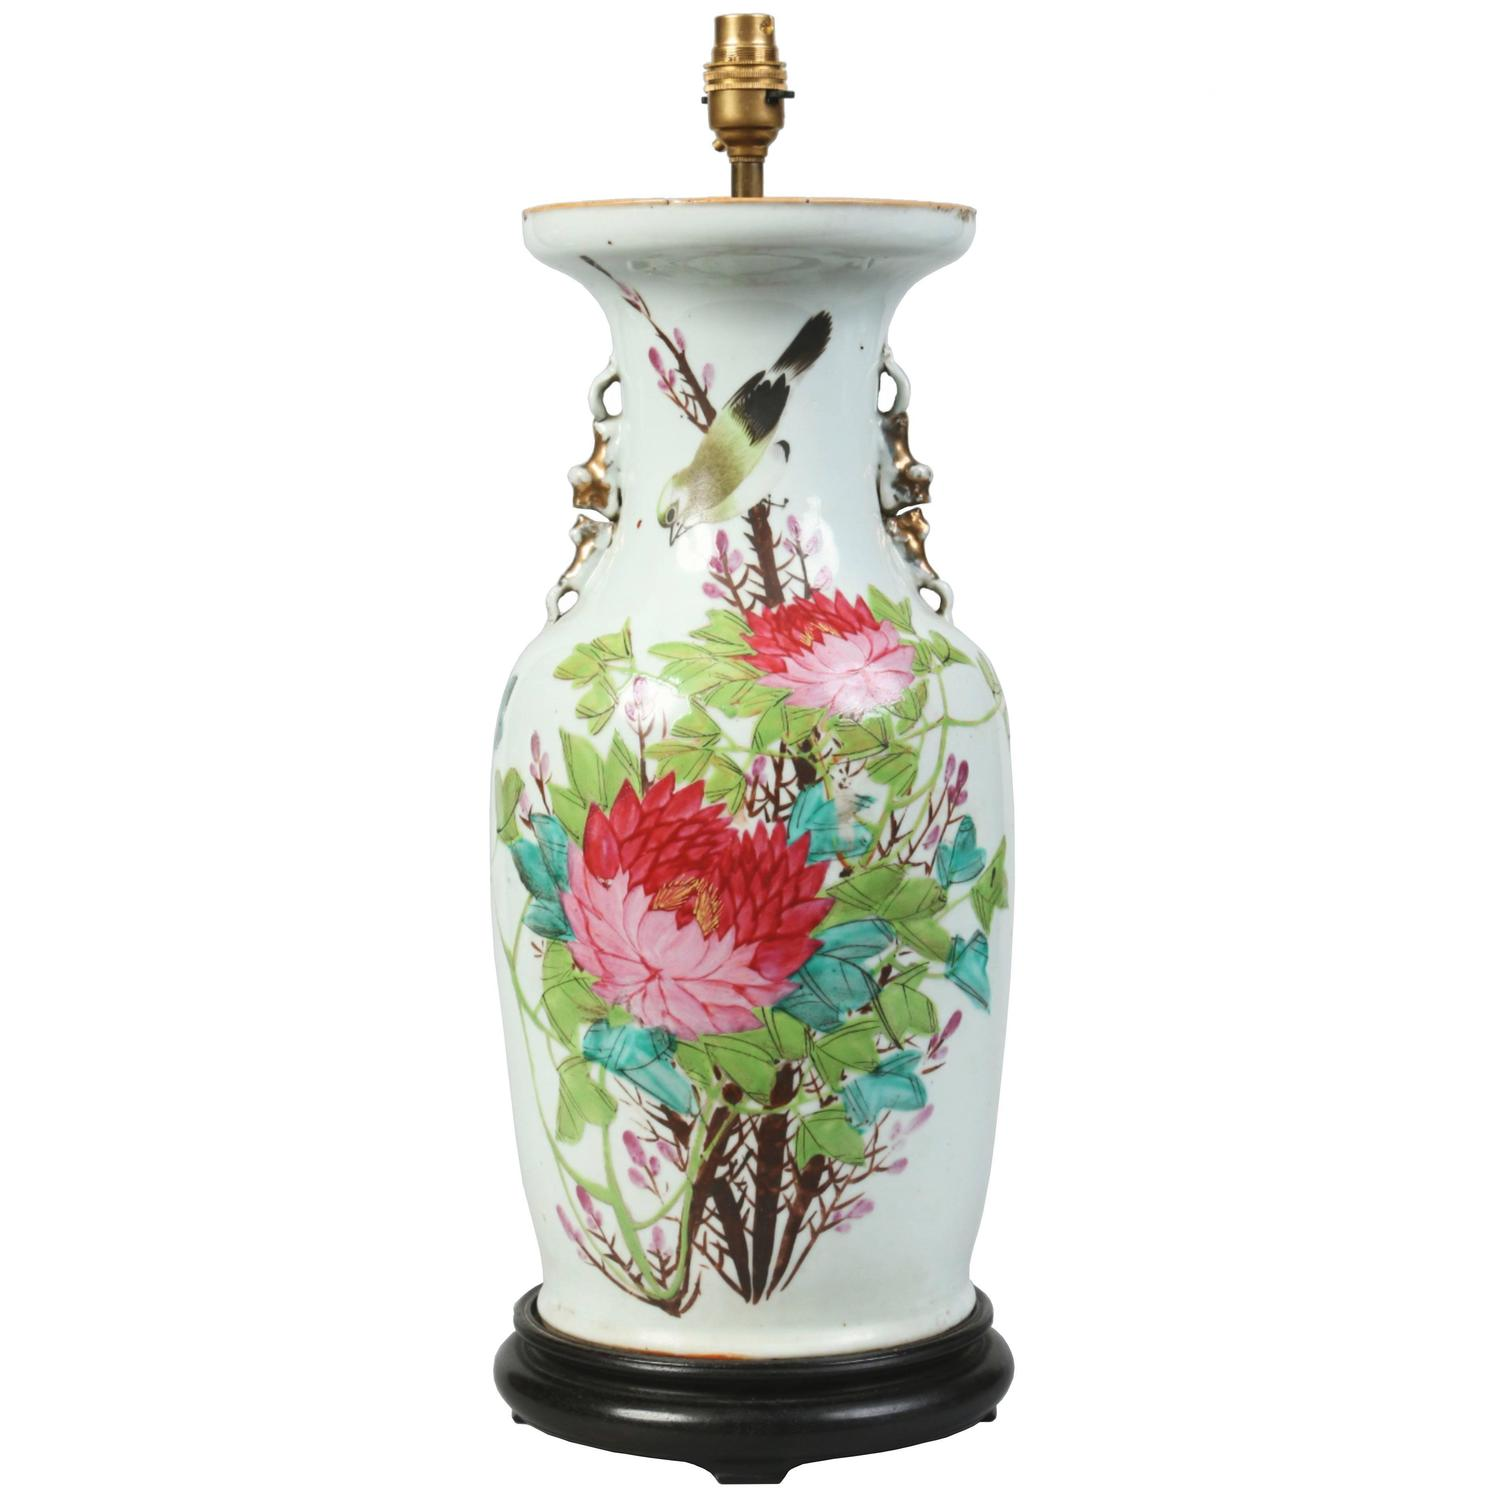 Antique early 20th century chinese republic period porcelain vase antique early 20th century chinese republic period porcelain vase table lamp for sale at 1stdibs reviewsmspy